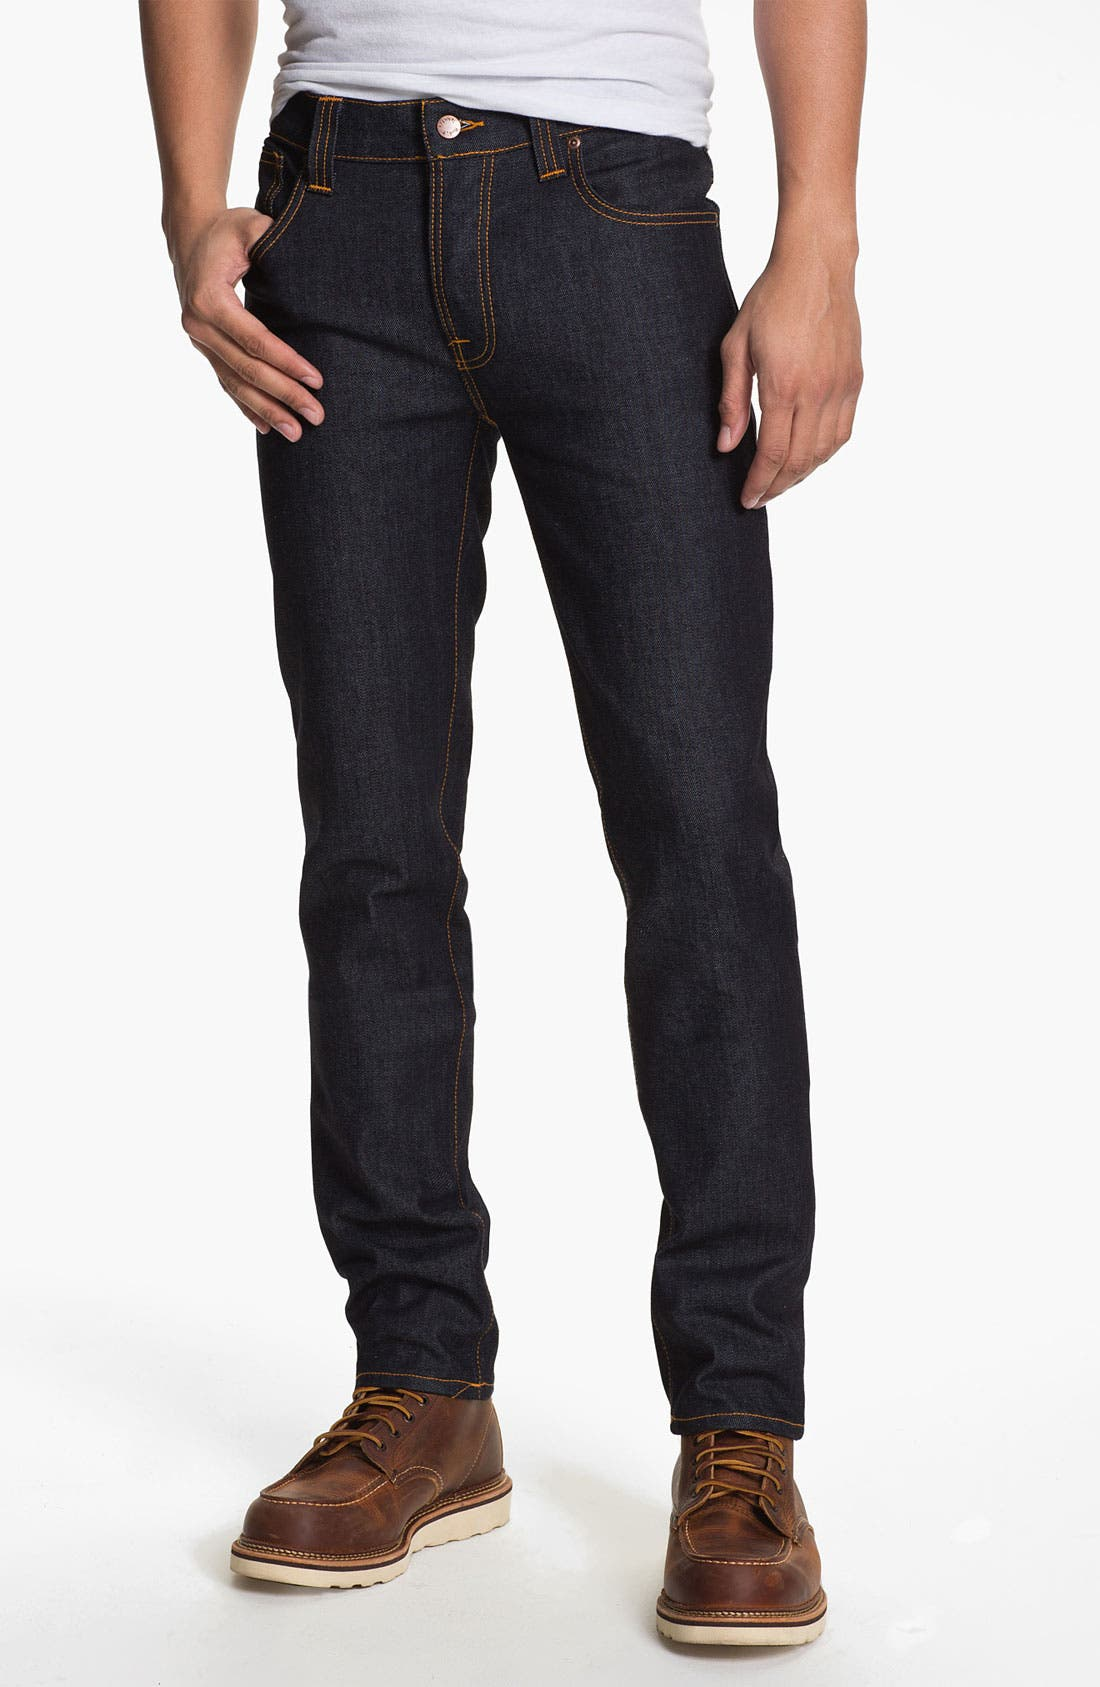 Alternate Image 1 Selected - Nudie 'Grim Tim' Slim Fit Jeans (Organic Dry Navy)